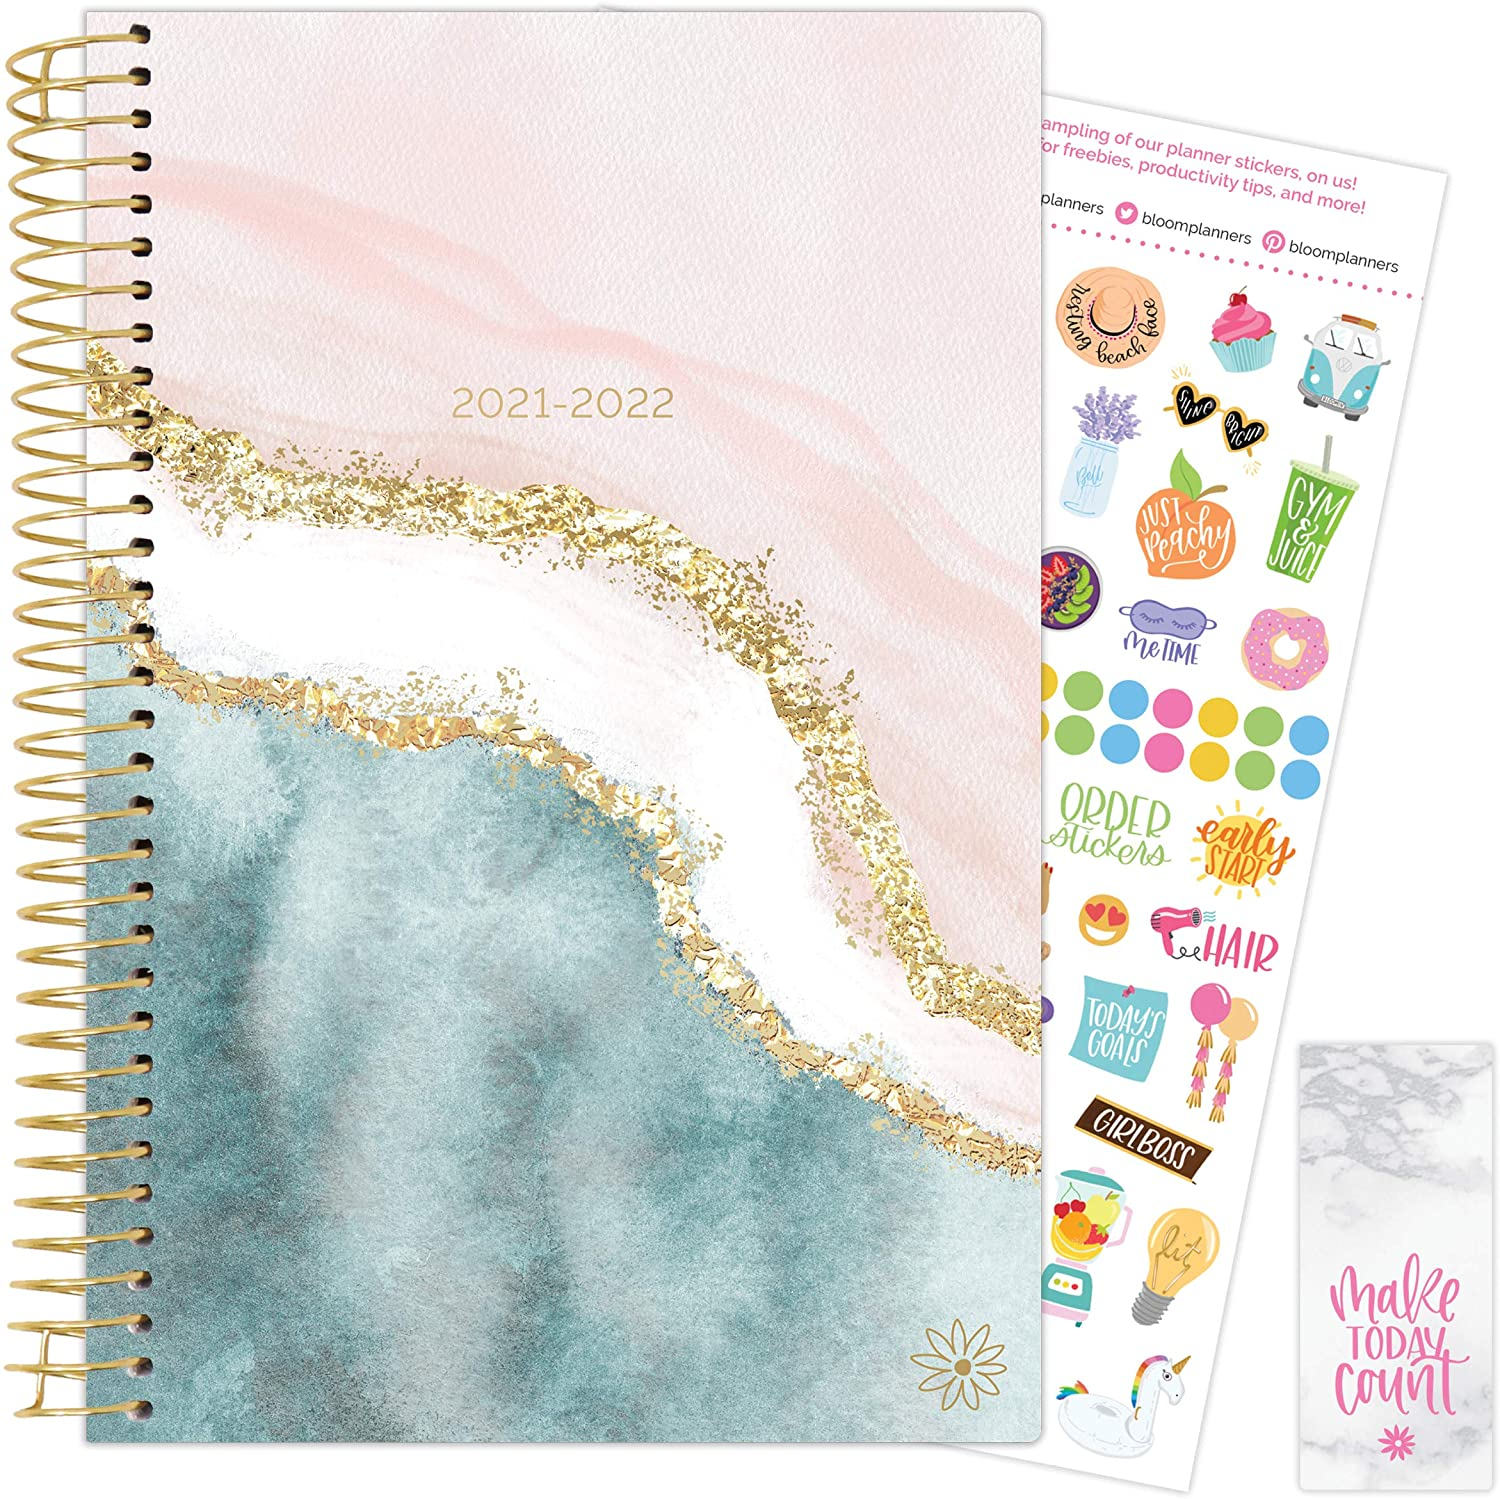 Daydream Believer 2021-22 Soft Cover Planner